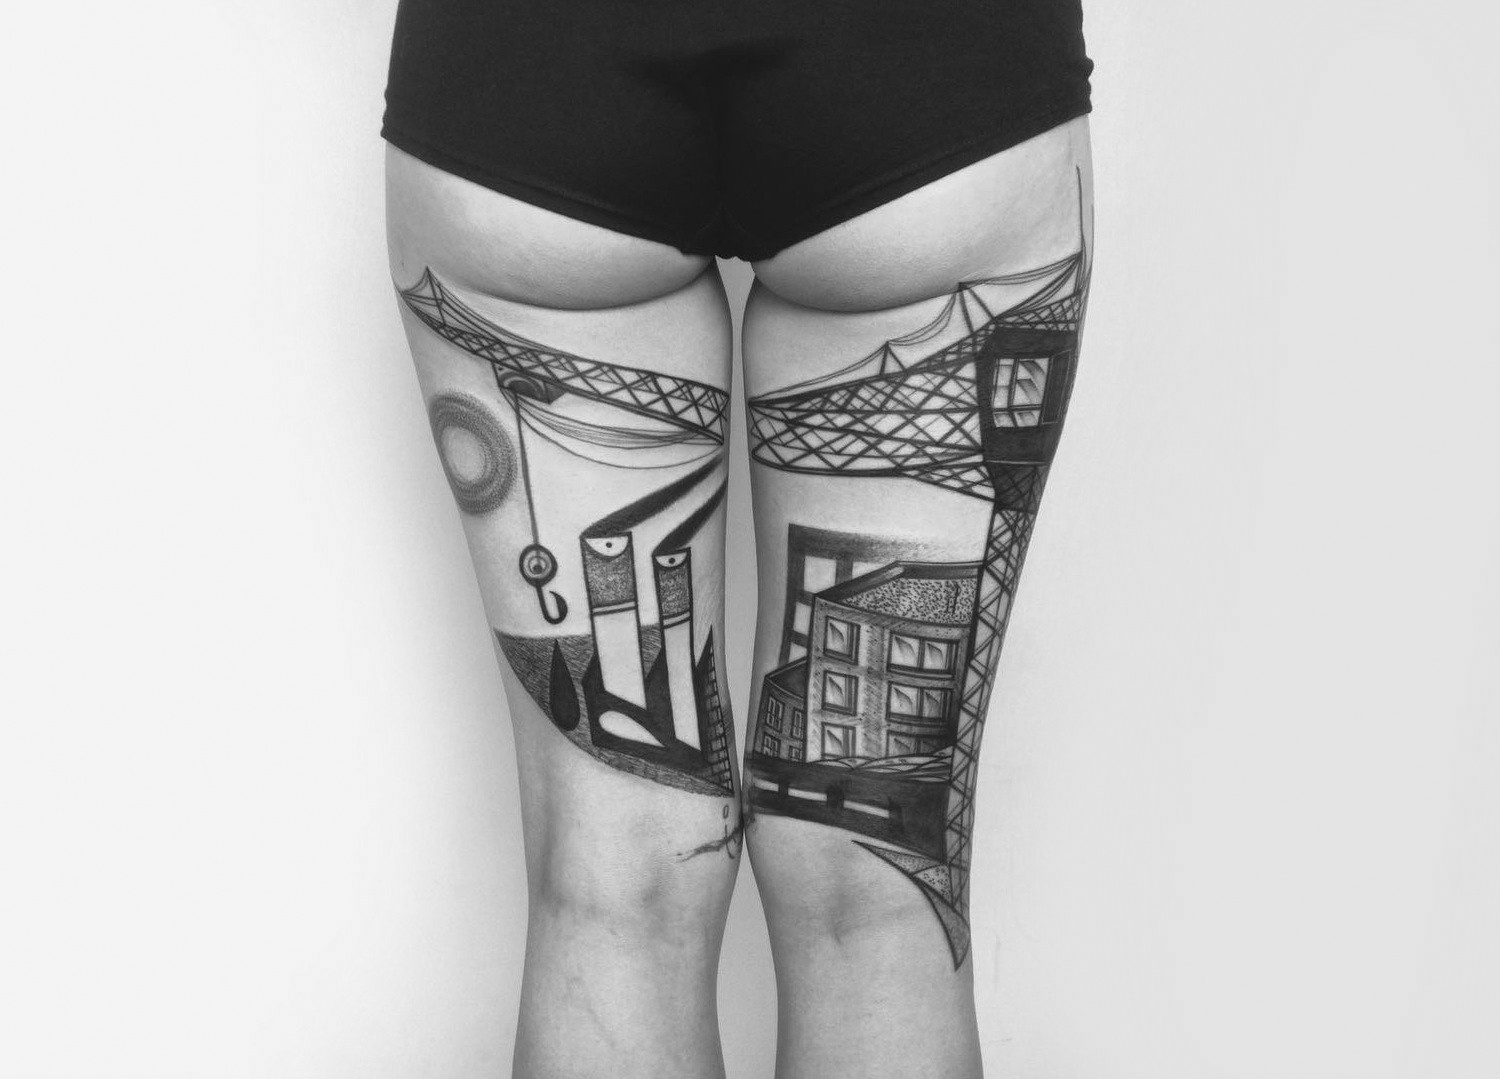 ndustrial architecture thigh tattoos by Peter Aurisch